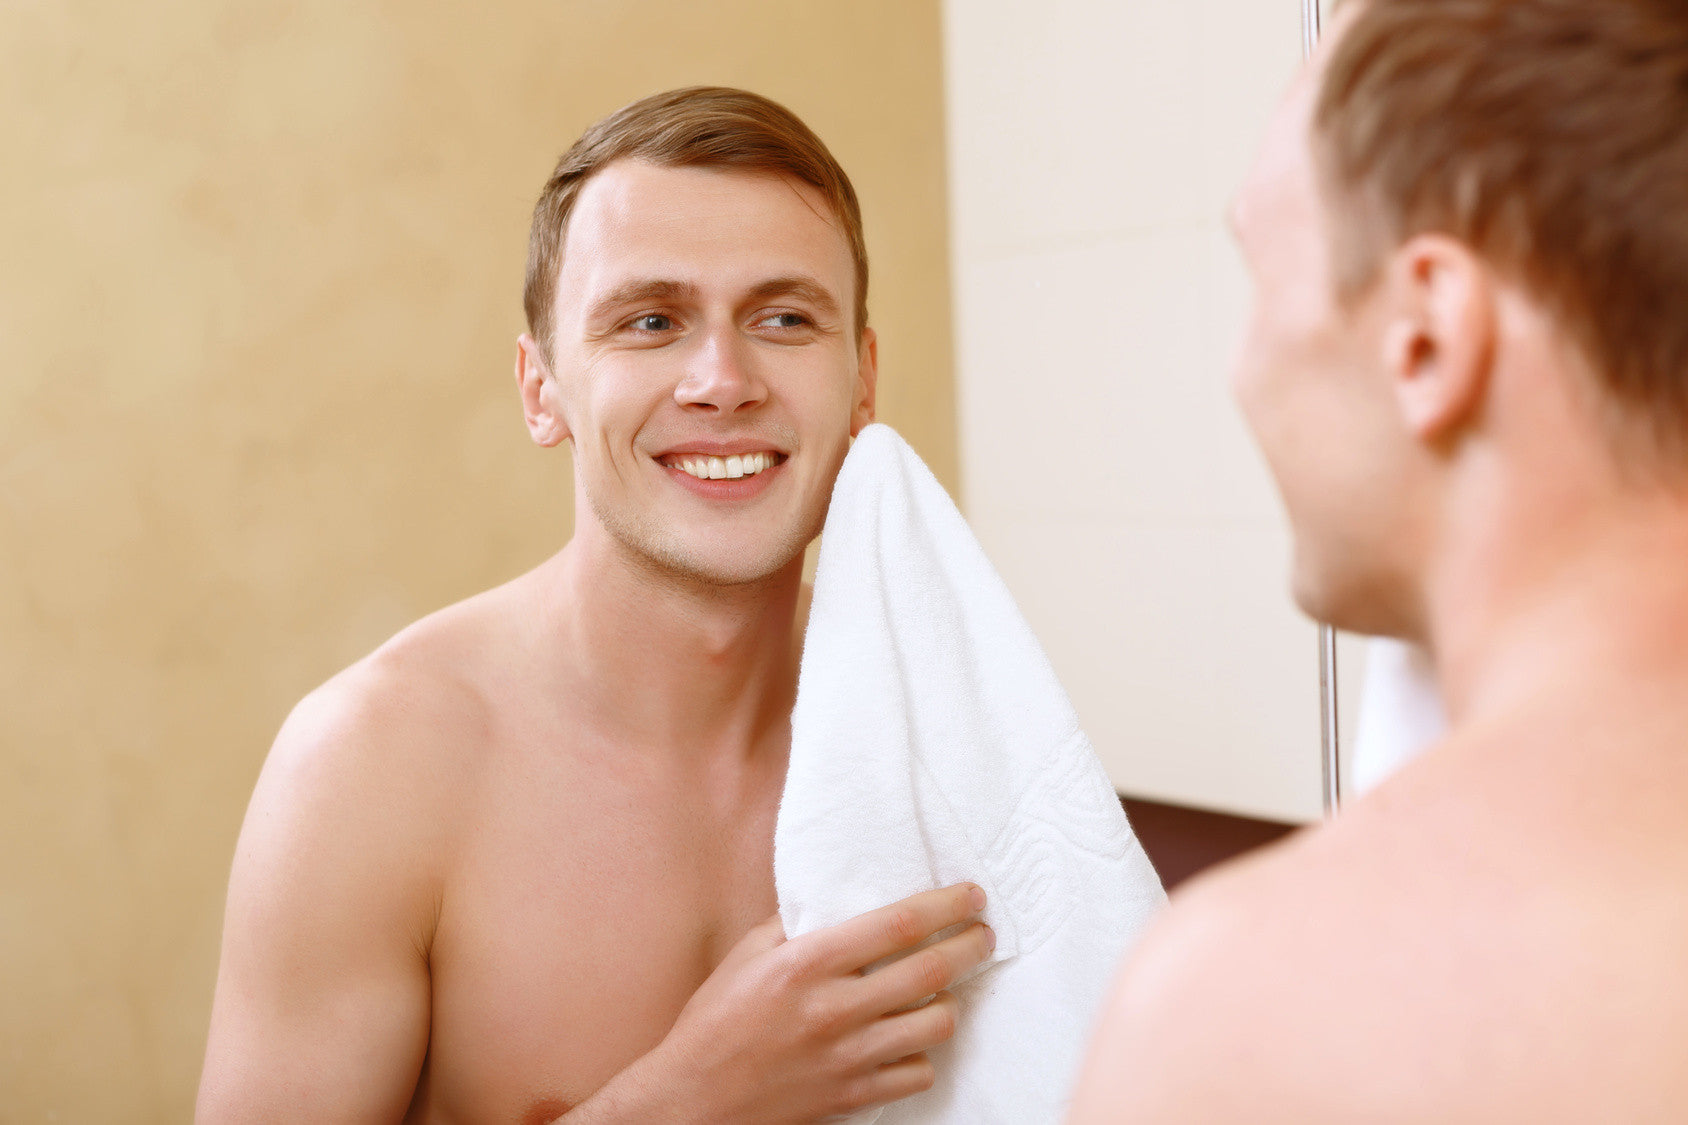 5 Tips On How To Hydrate Skin For Men